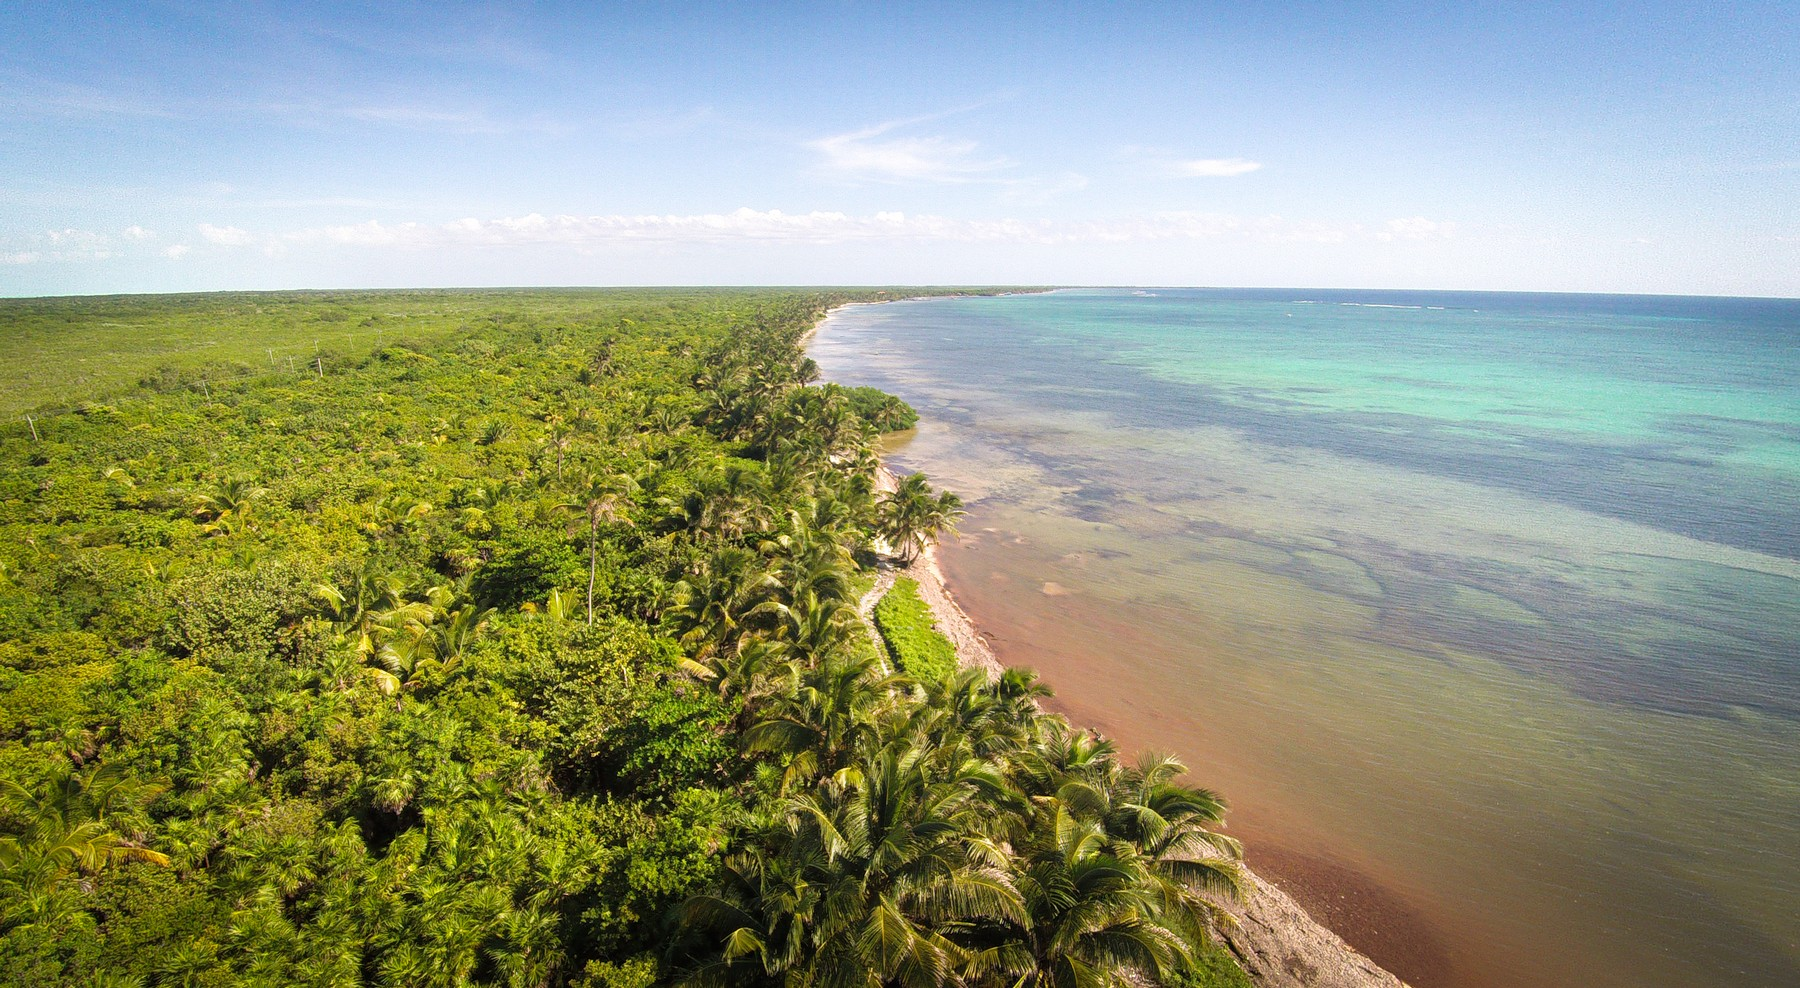 Land for Sale at The Jewel Of Belize San Pedro Town, Ambergris Caye Belize